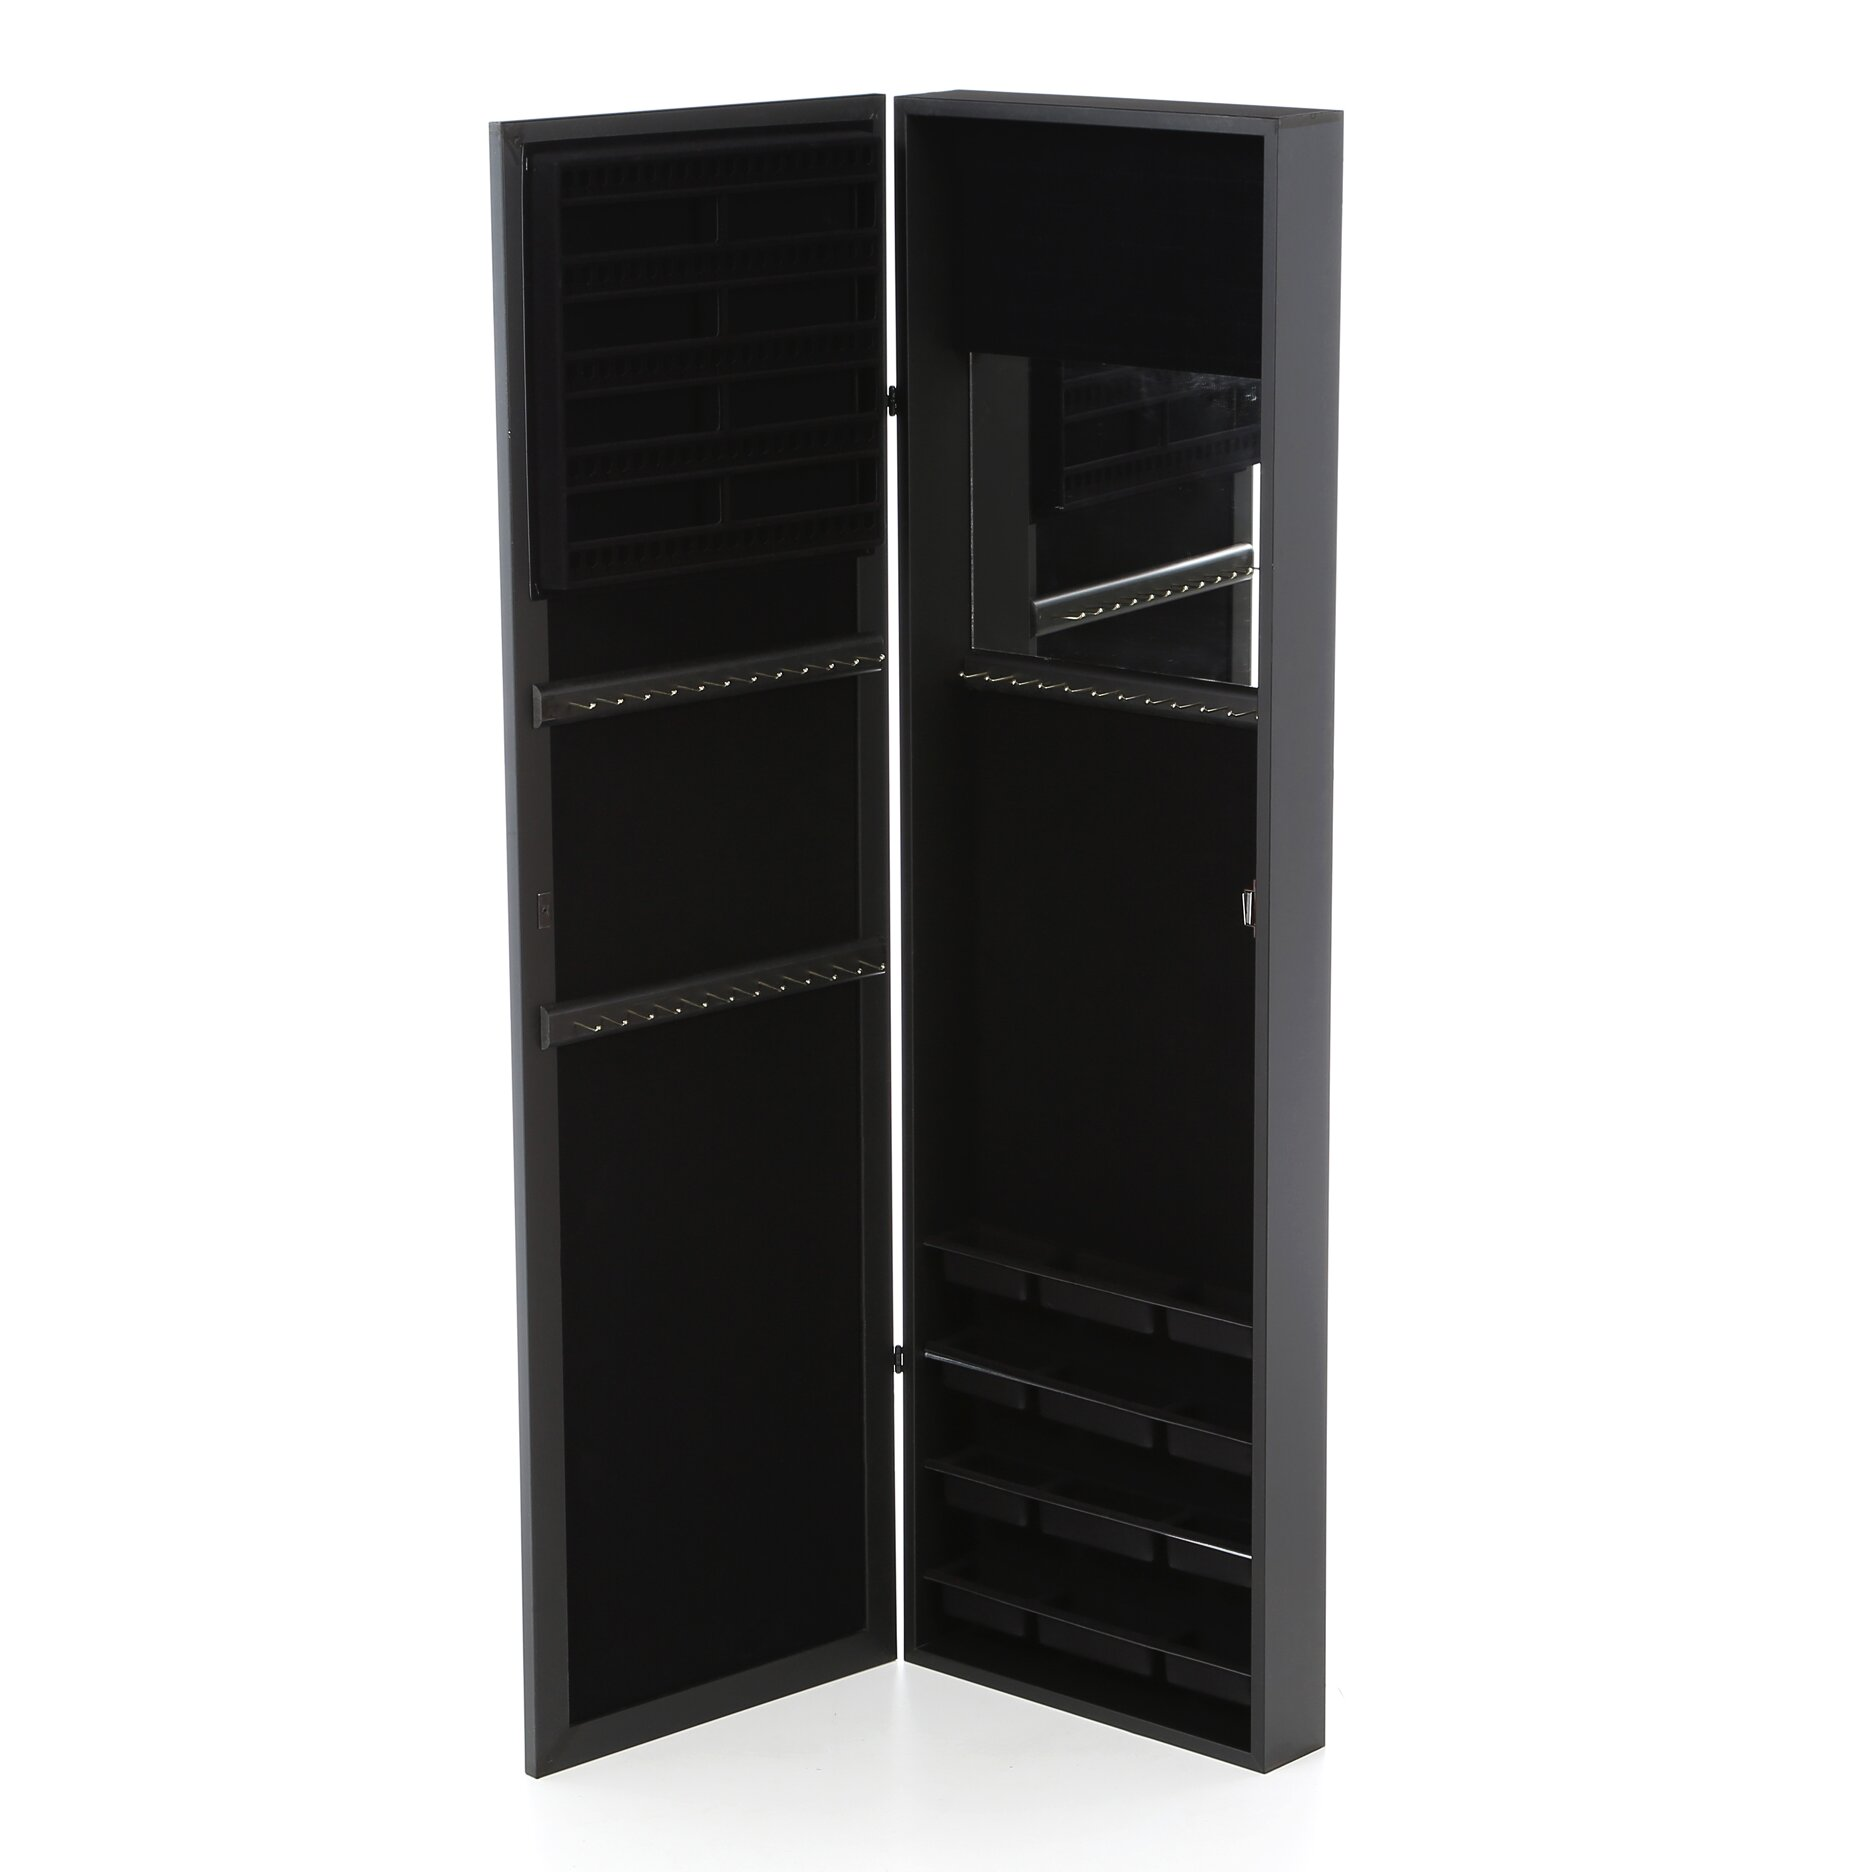 mirrotek wall mounted jewelry armoire with mirror reviews wayfair. Black Bedroom Furniture Sets. Home Design Ideas